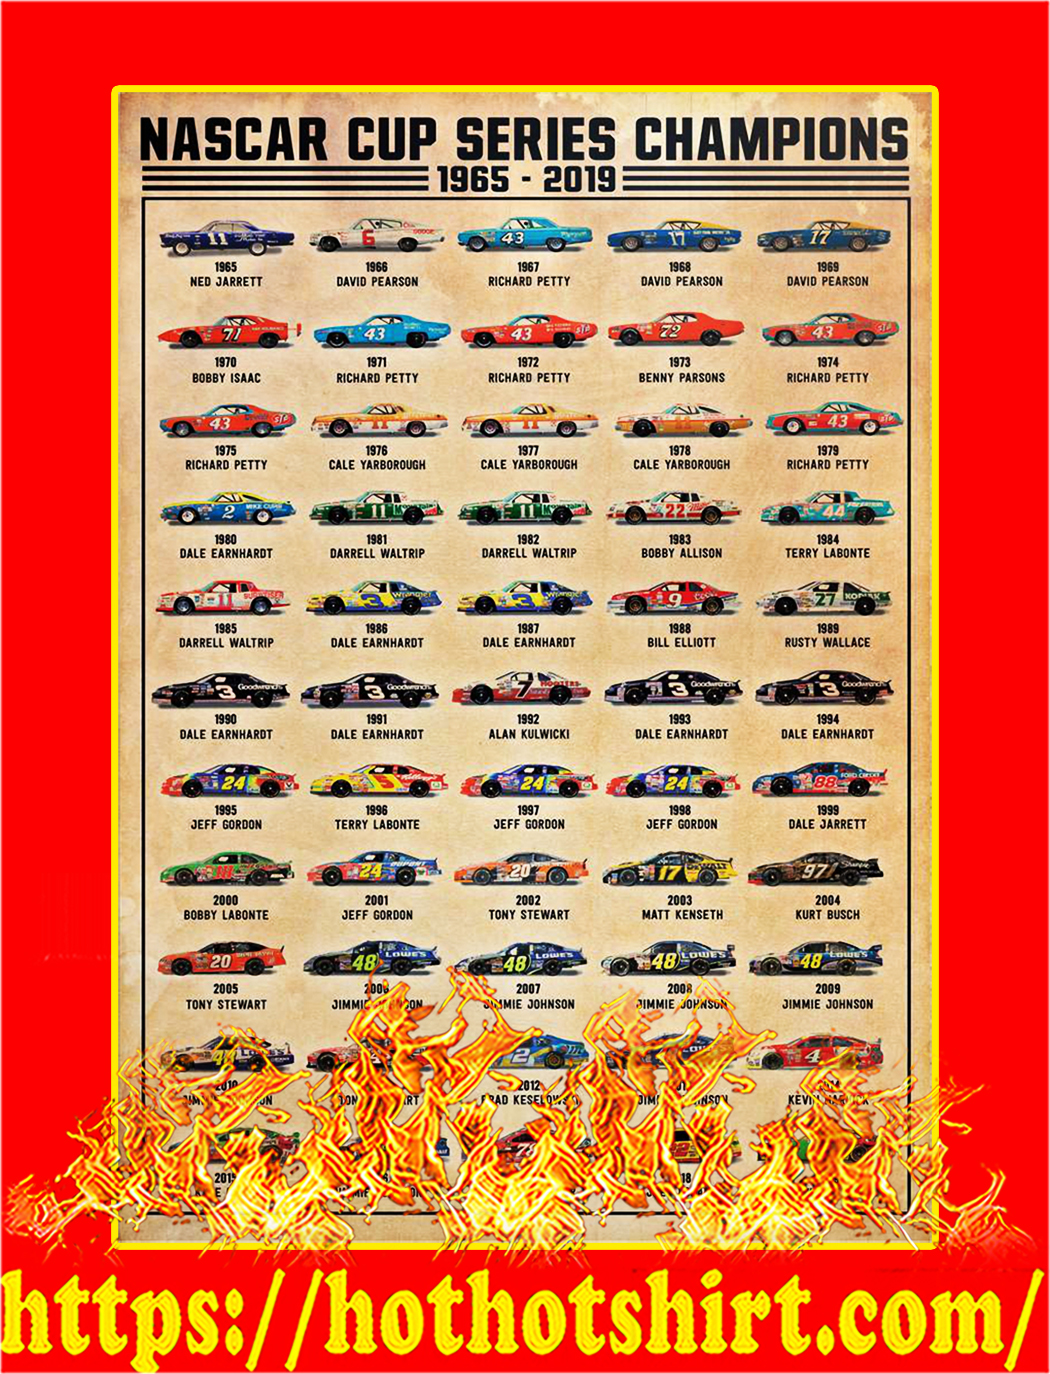 Nascar cup series champions poster - A3